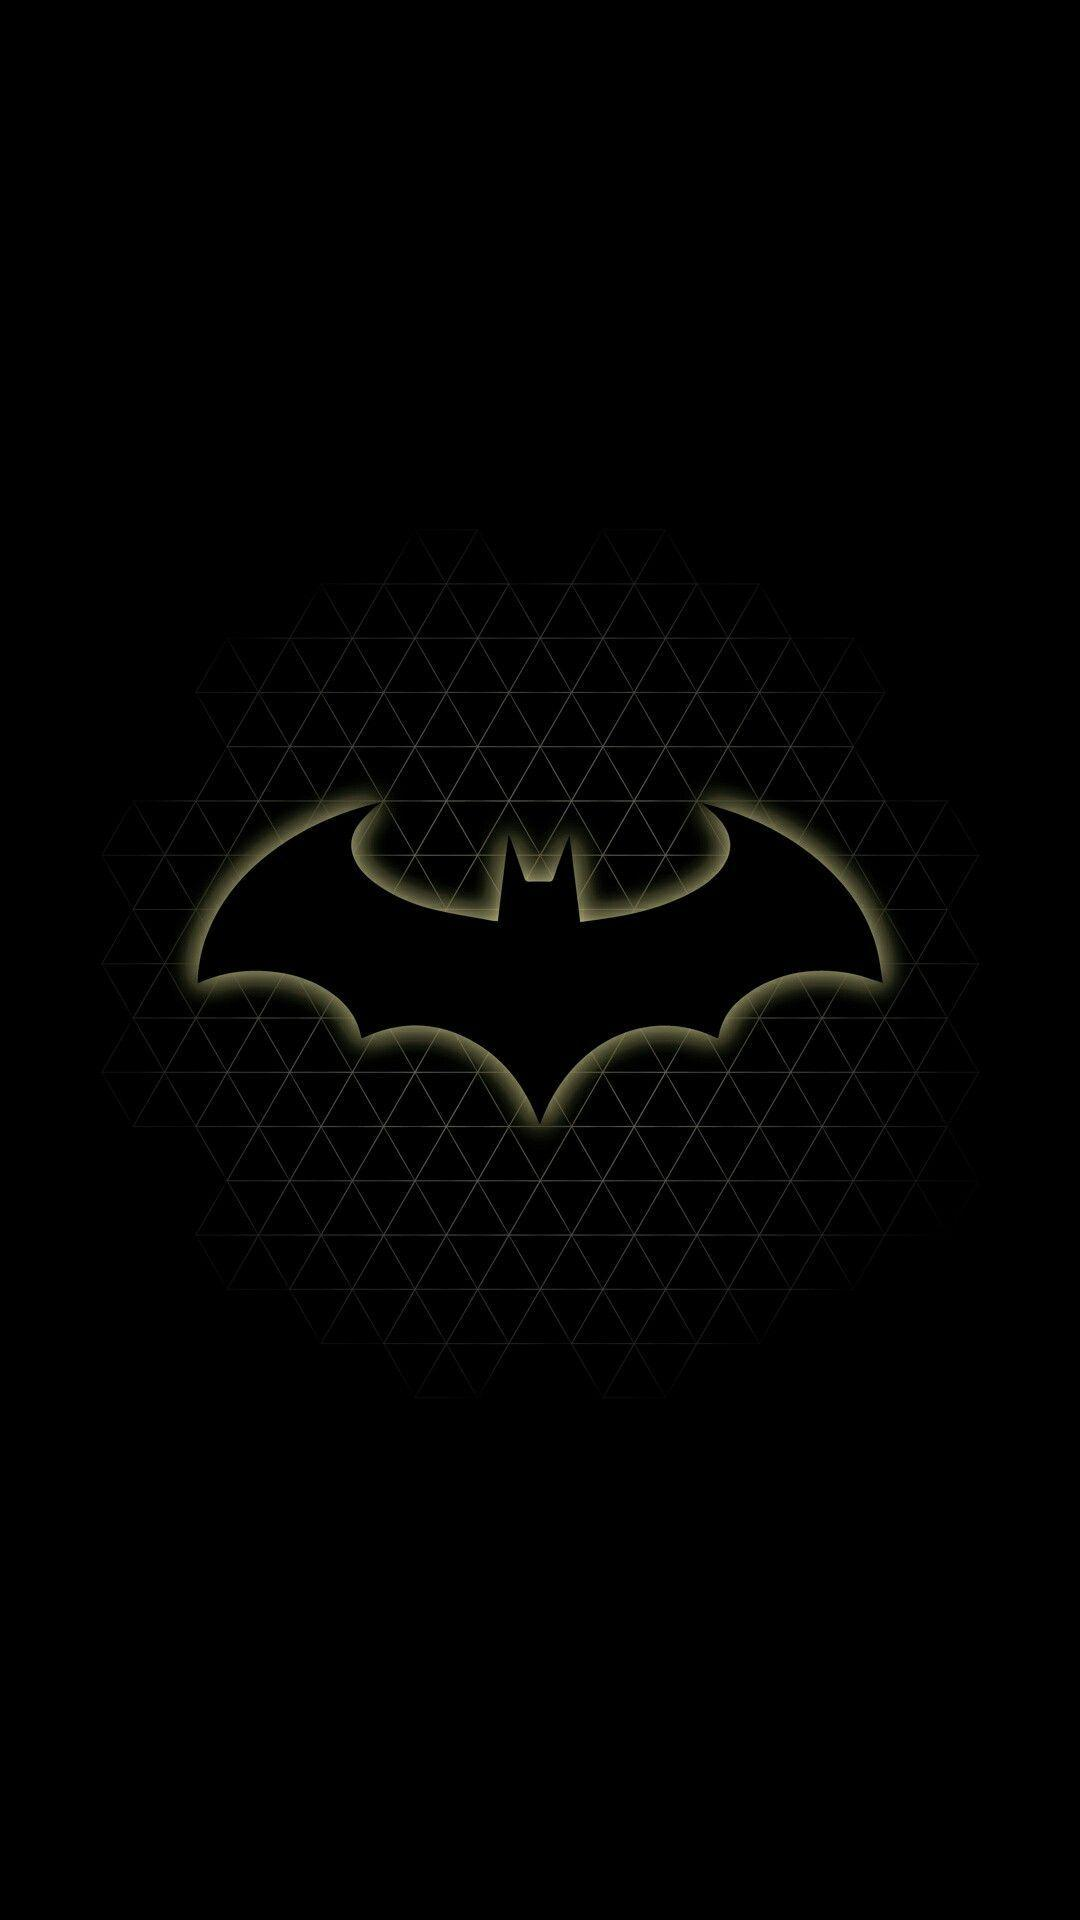 Black Batman Wallpaper : black, batman, wallpaper, Batman, Black, Android, Wallpapers, Wallpaper